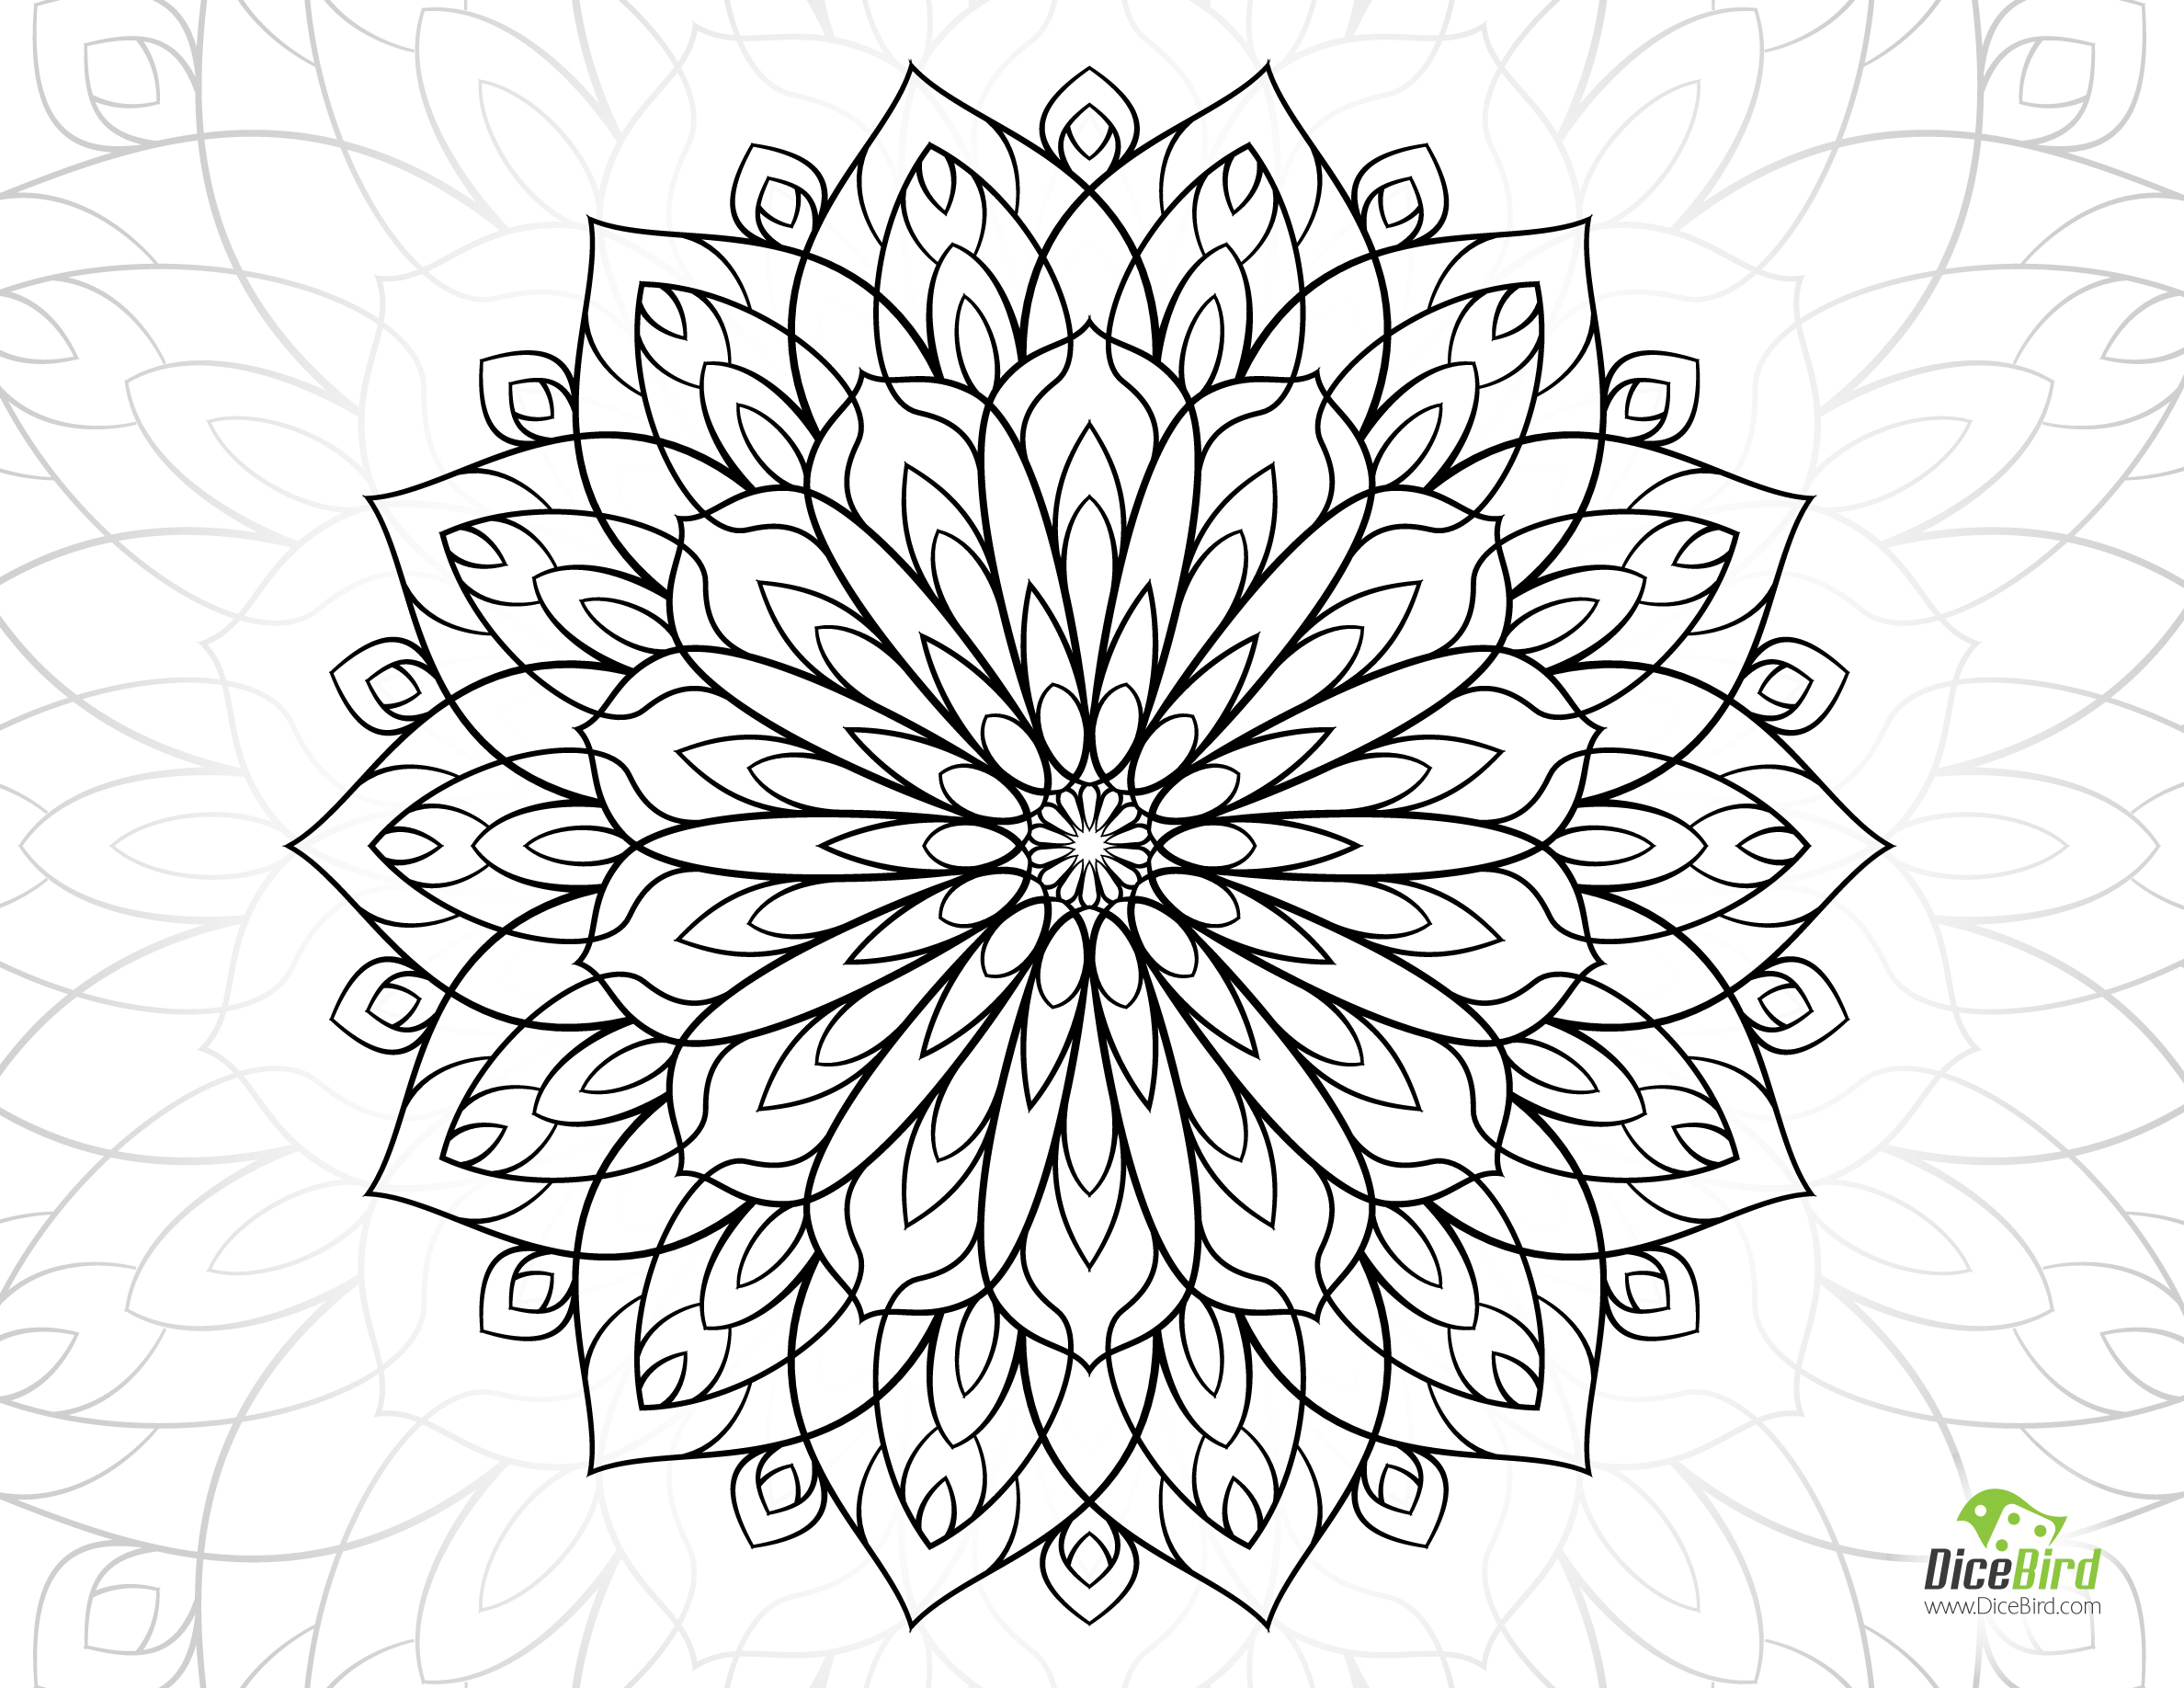 Dahlia coloring #1, Download drawings